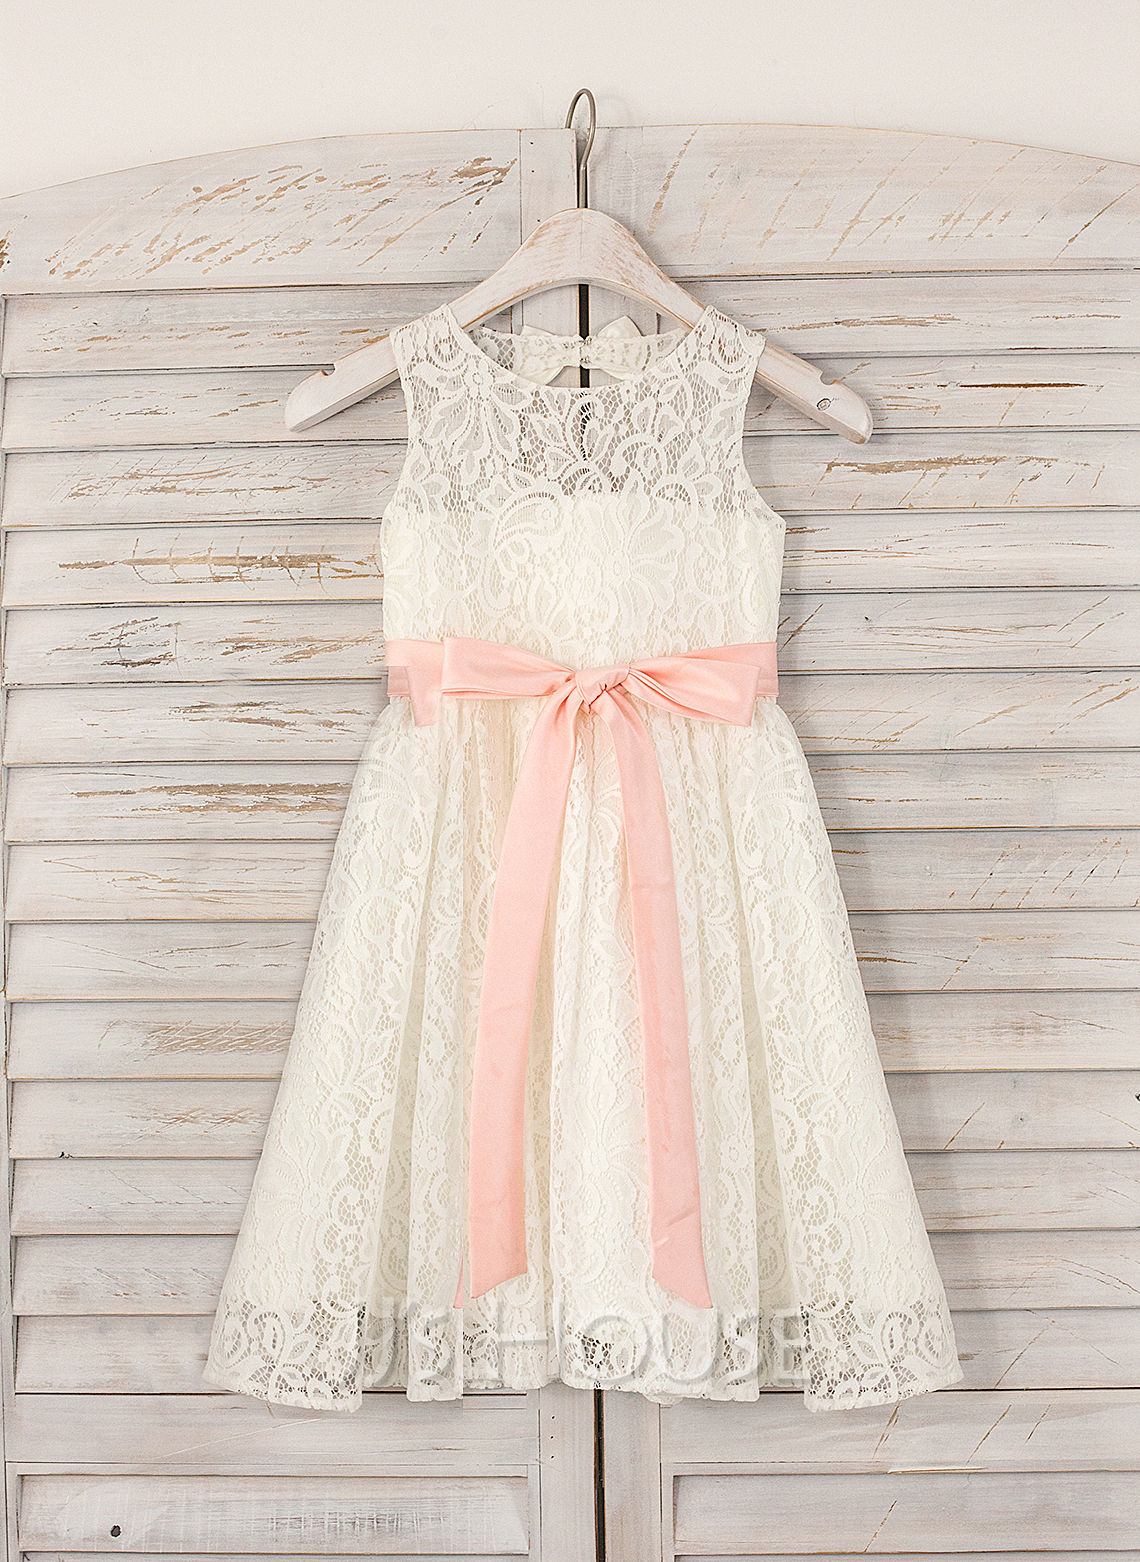 A-Line/Princess Knee-length Flower Girl Dress - Lace Sleeveless Jewel With Sash/Bow(s)/Back Hole